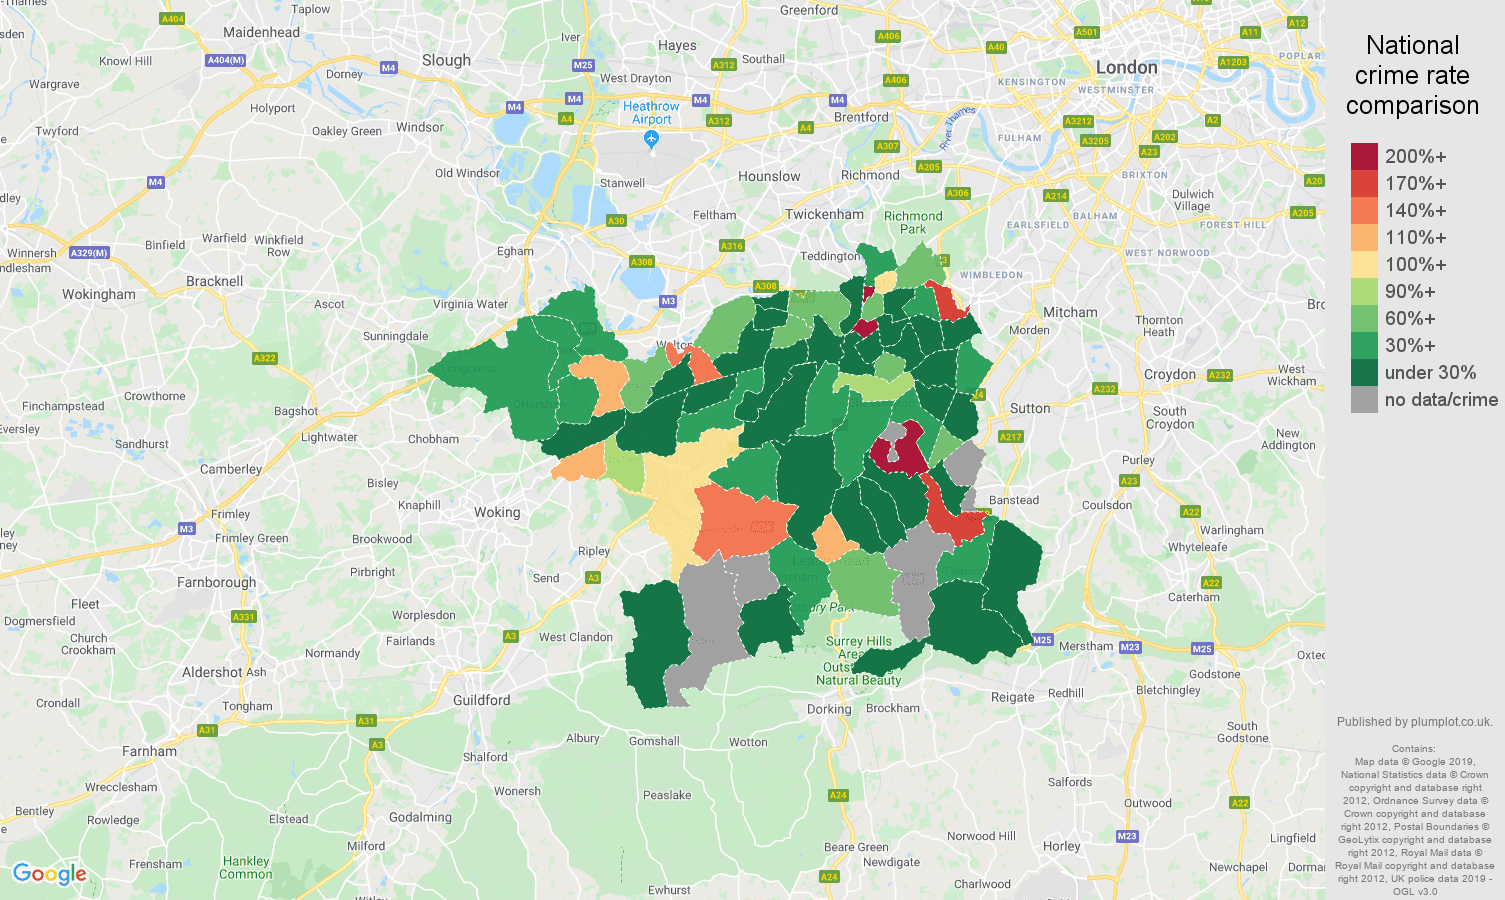 Kingston upon Thames shoplifting crime rate comparison map